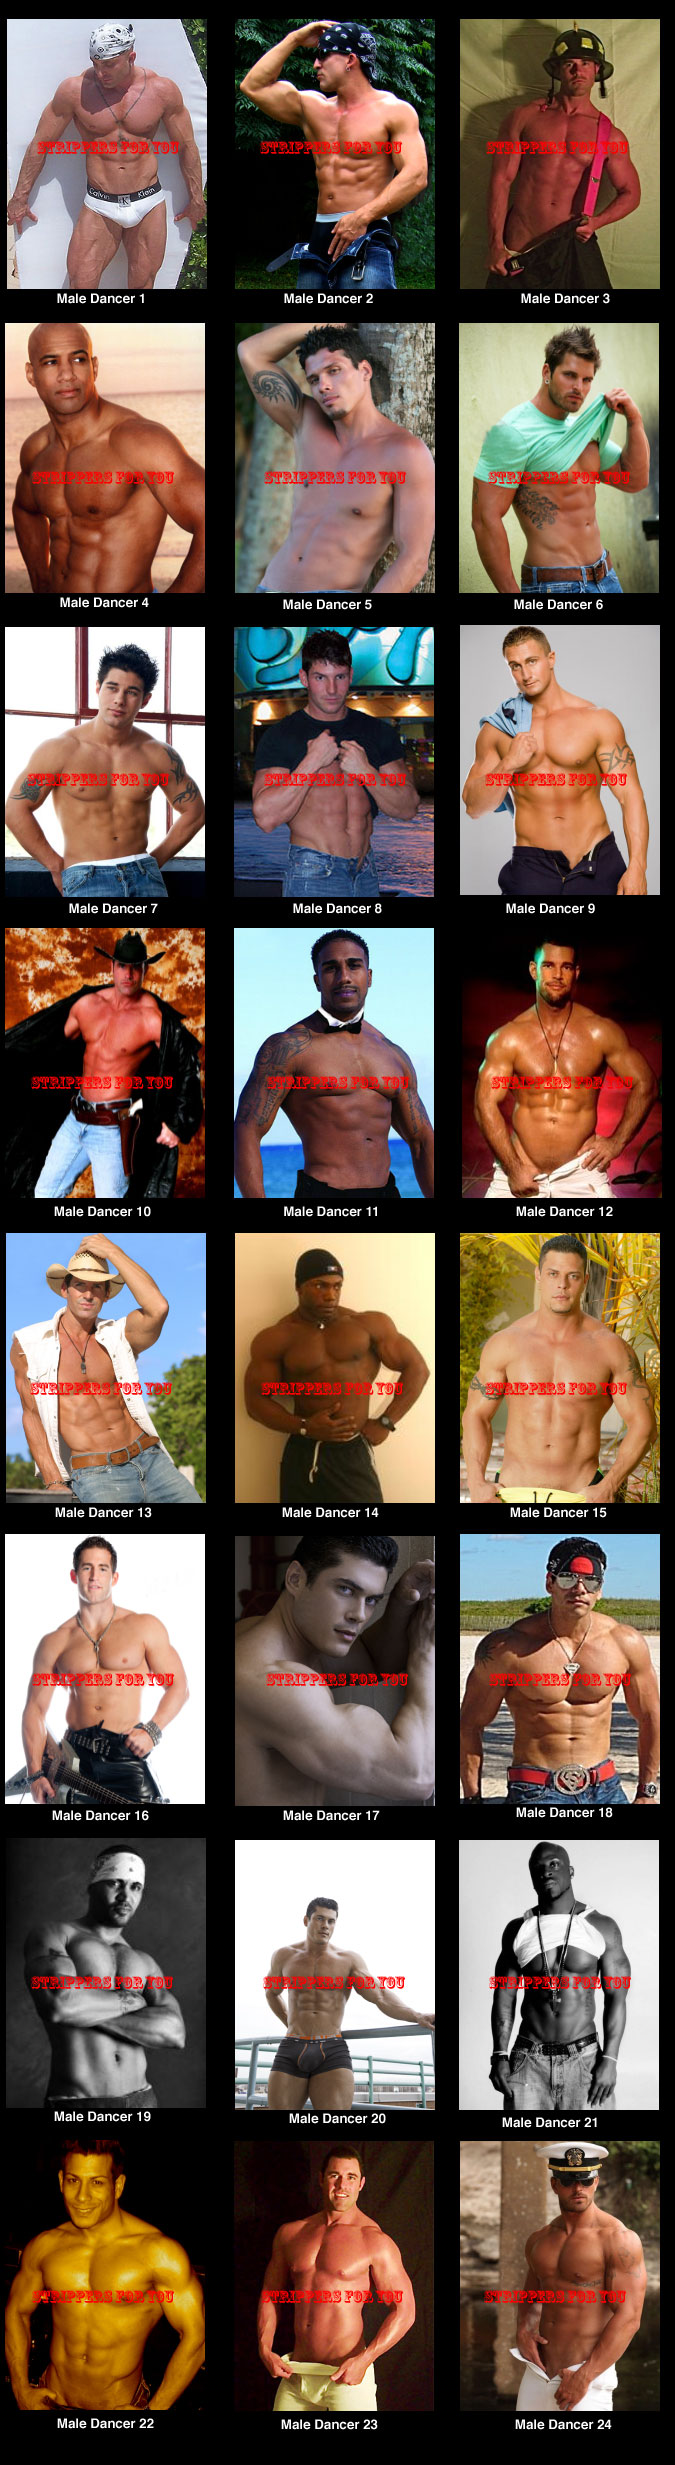 Boston male strippers